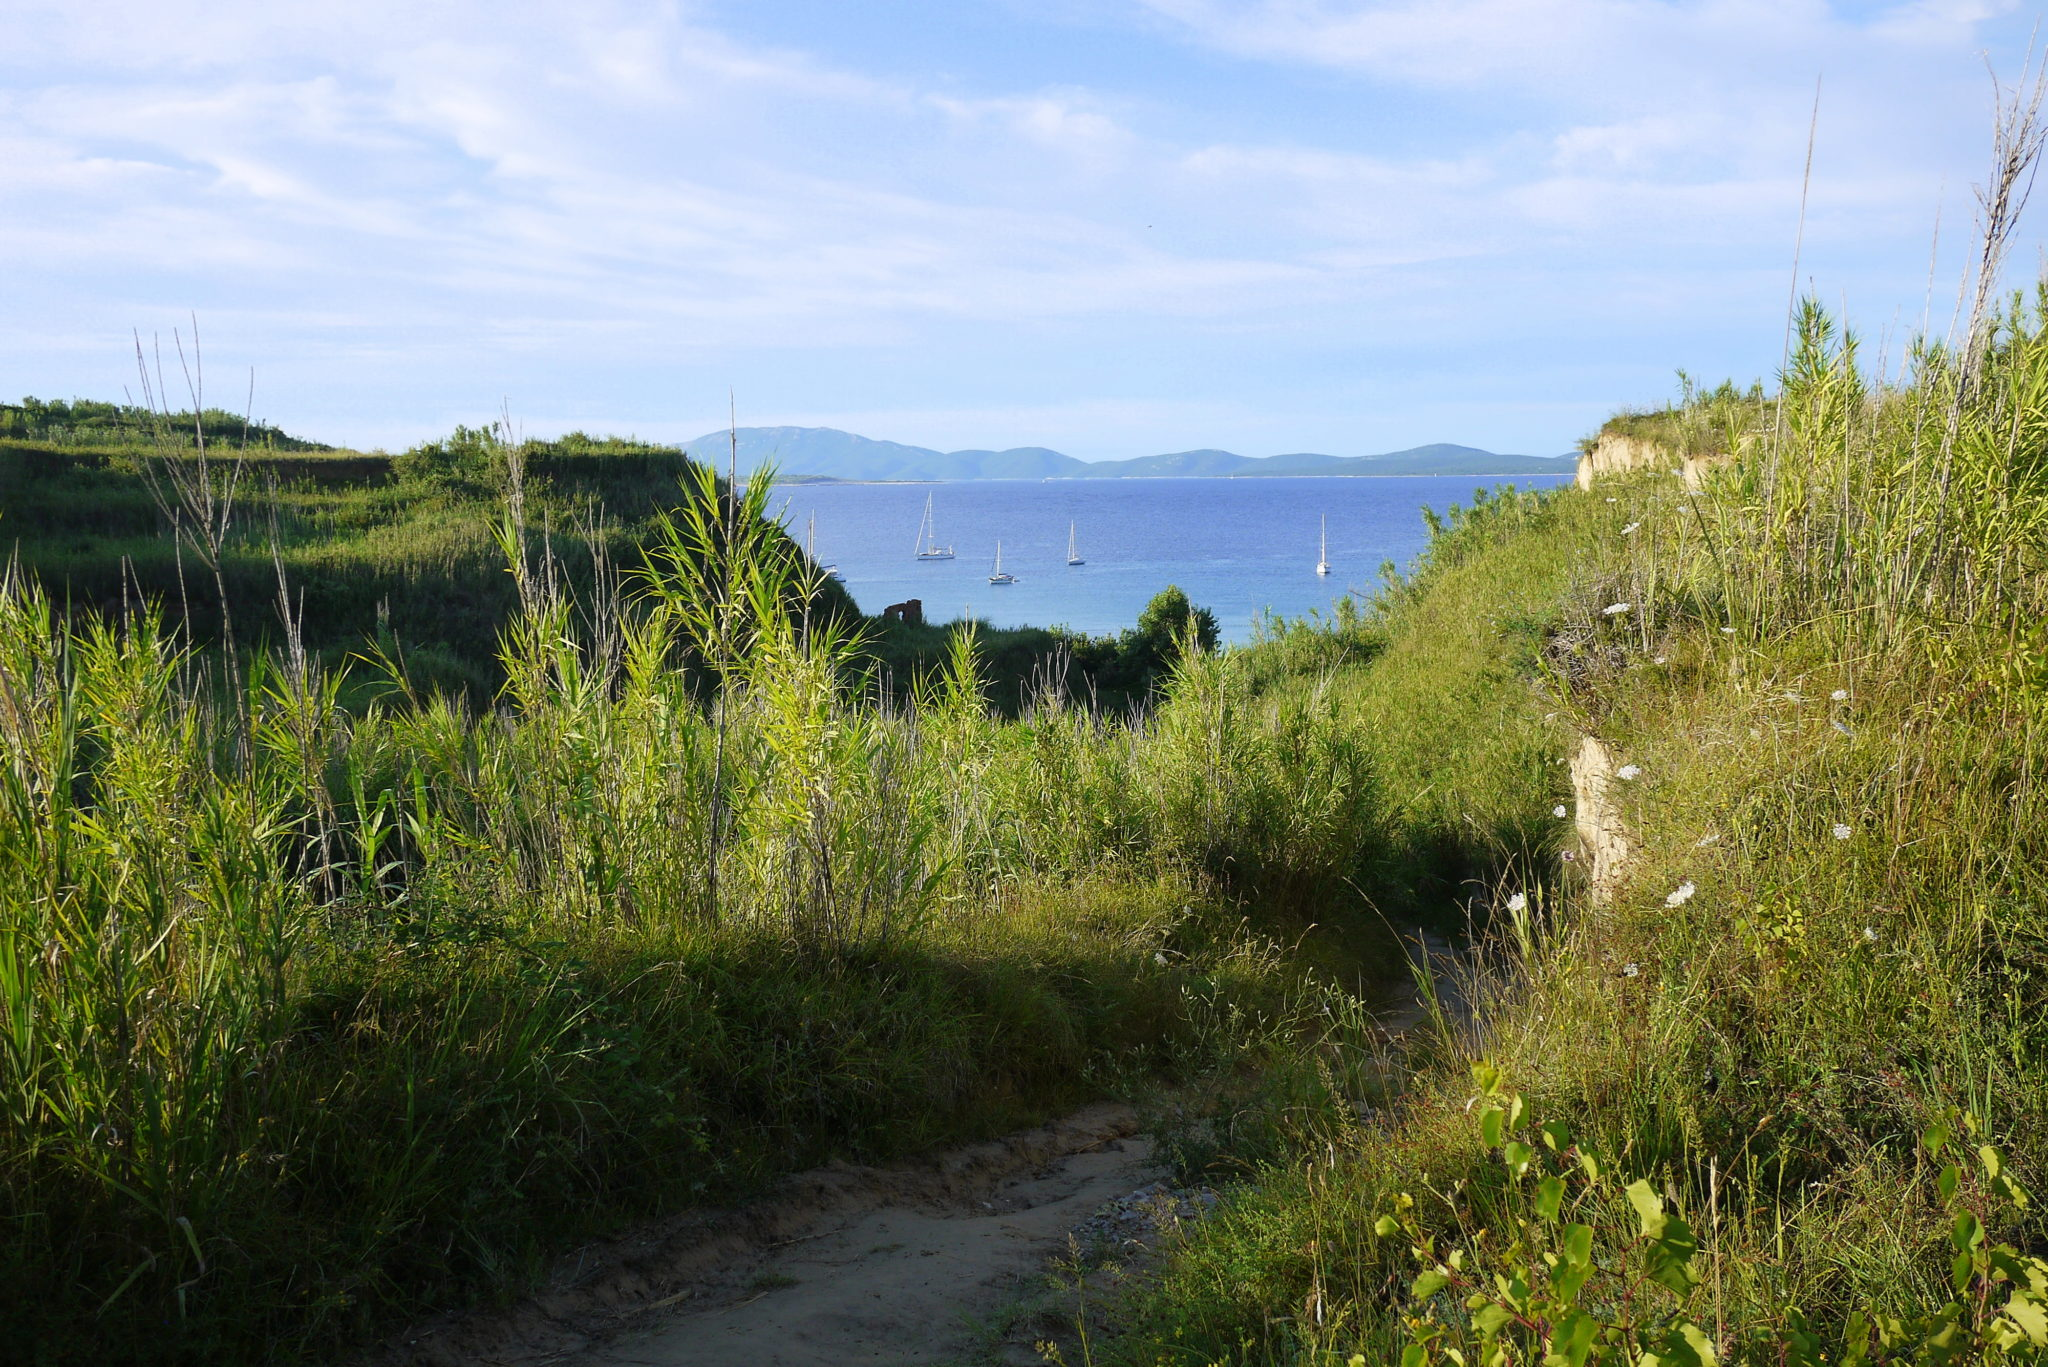 The Susak island is sandy and overgrown with bamboo.